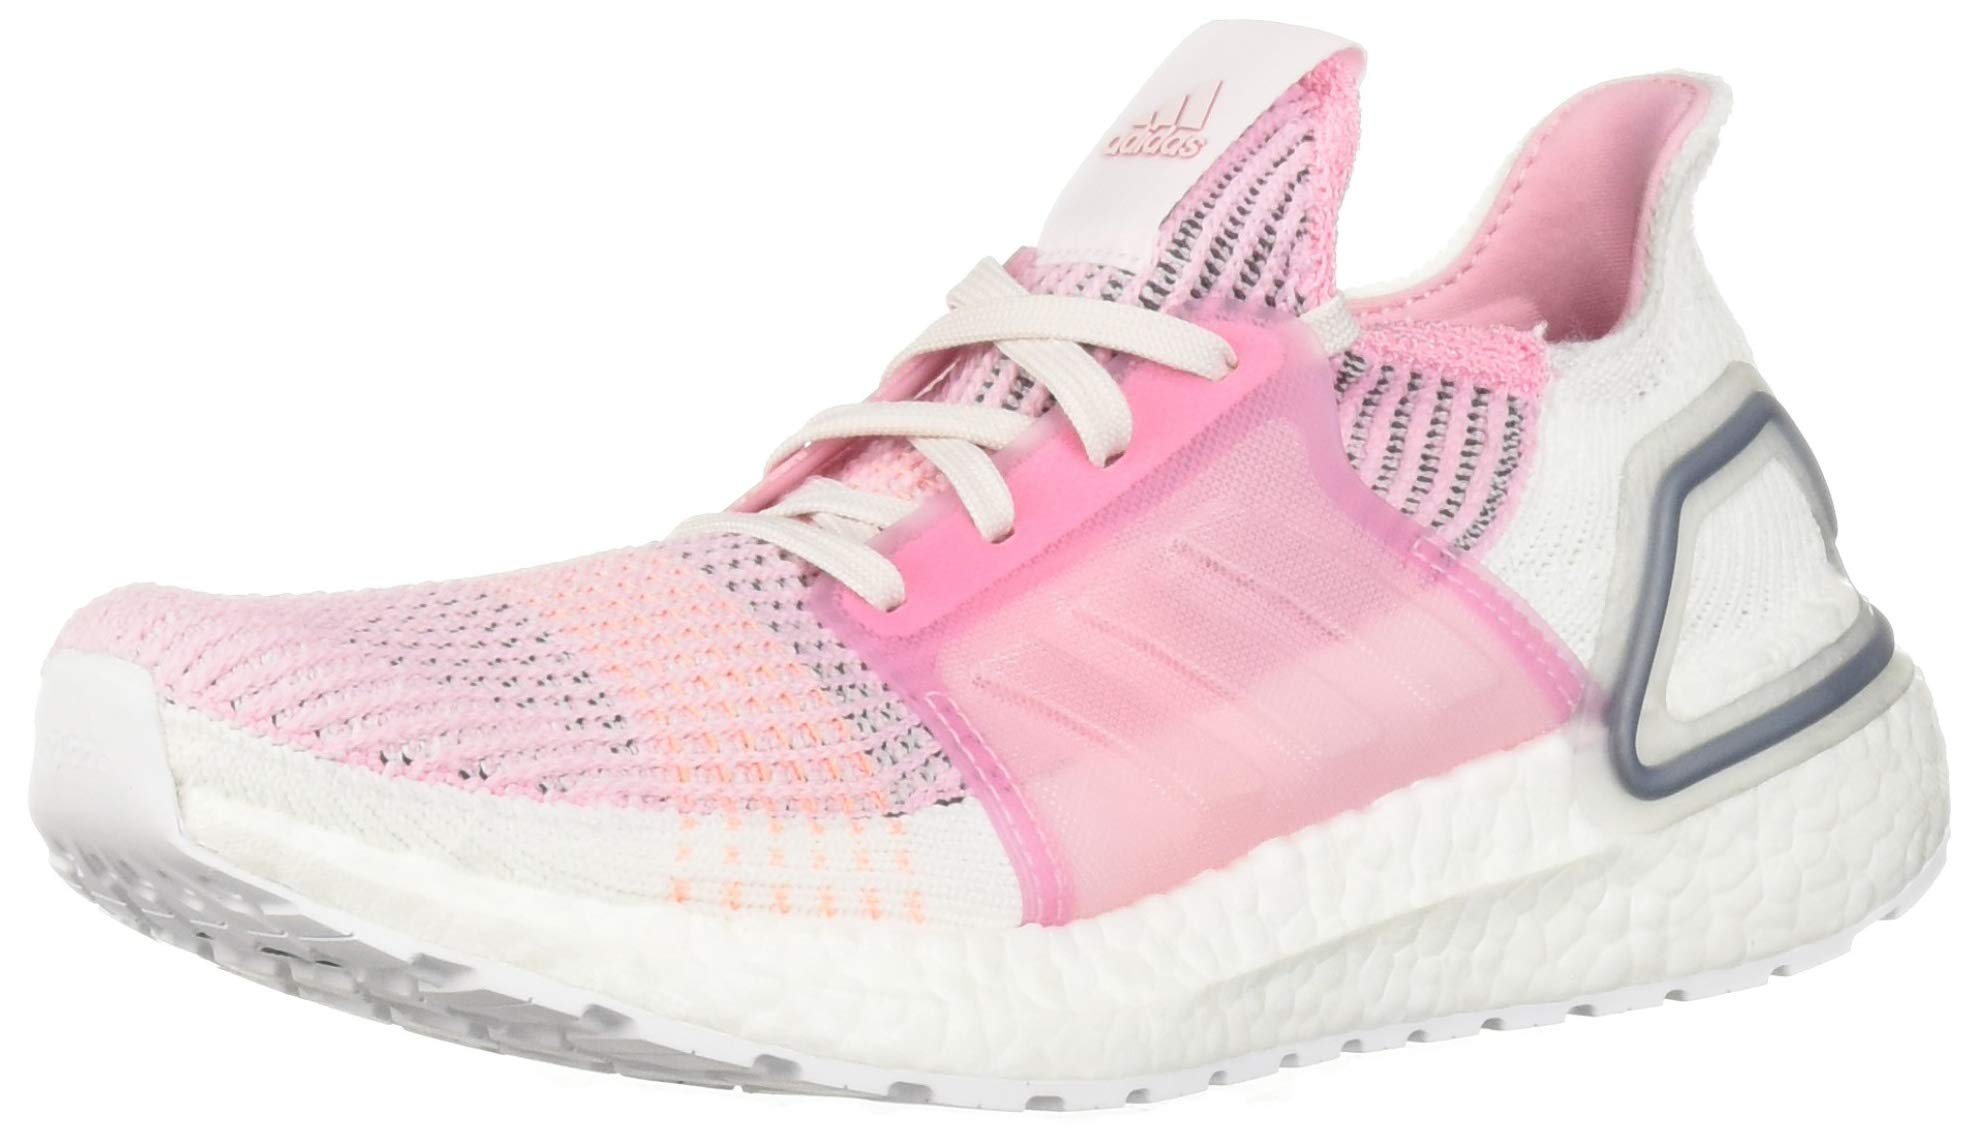 adidas Women's Ultraboost 19, True Pink/Orchid Tint, 6.5 M US by adidas